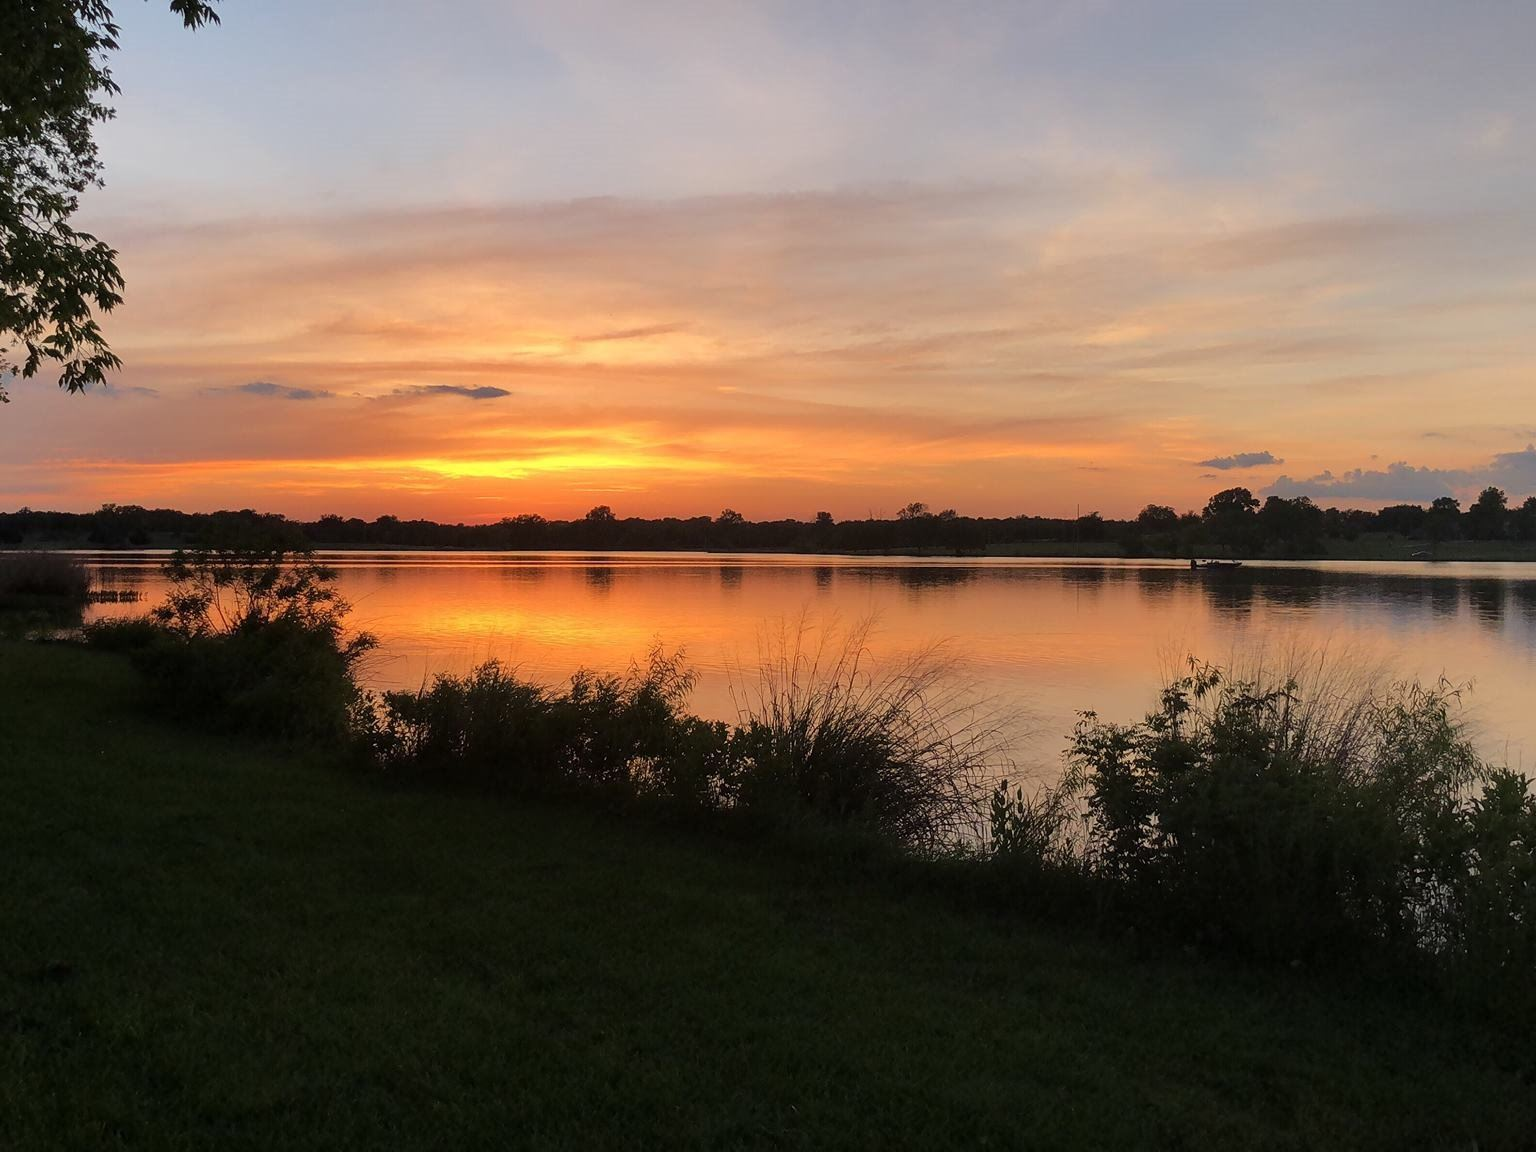 Purcell City Lake Sunset taken by Ryan Rogers